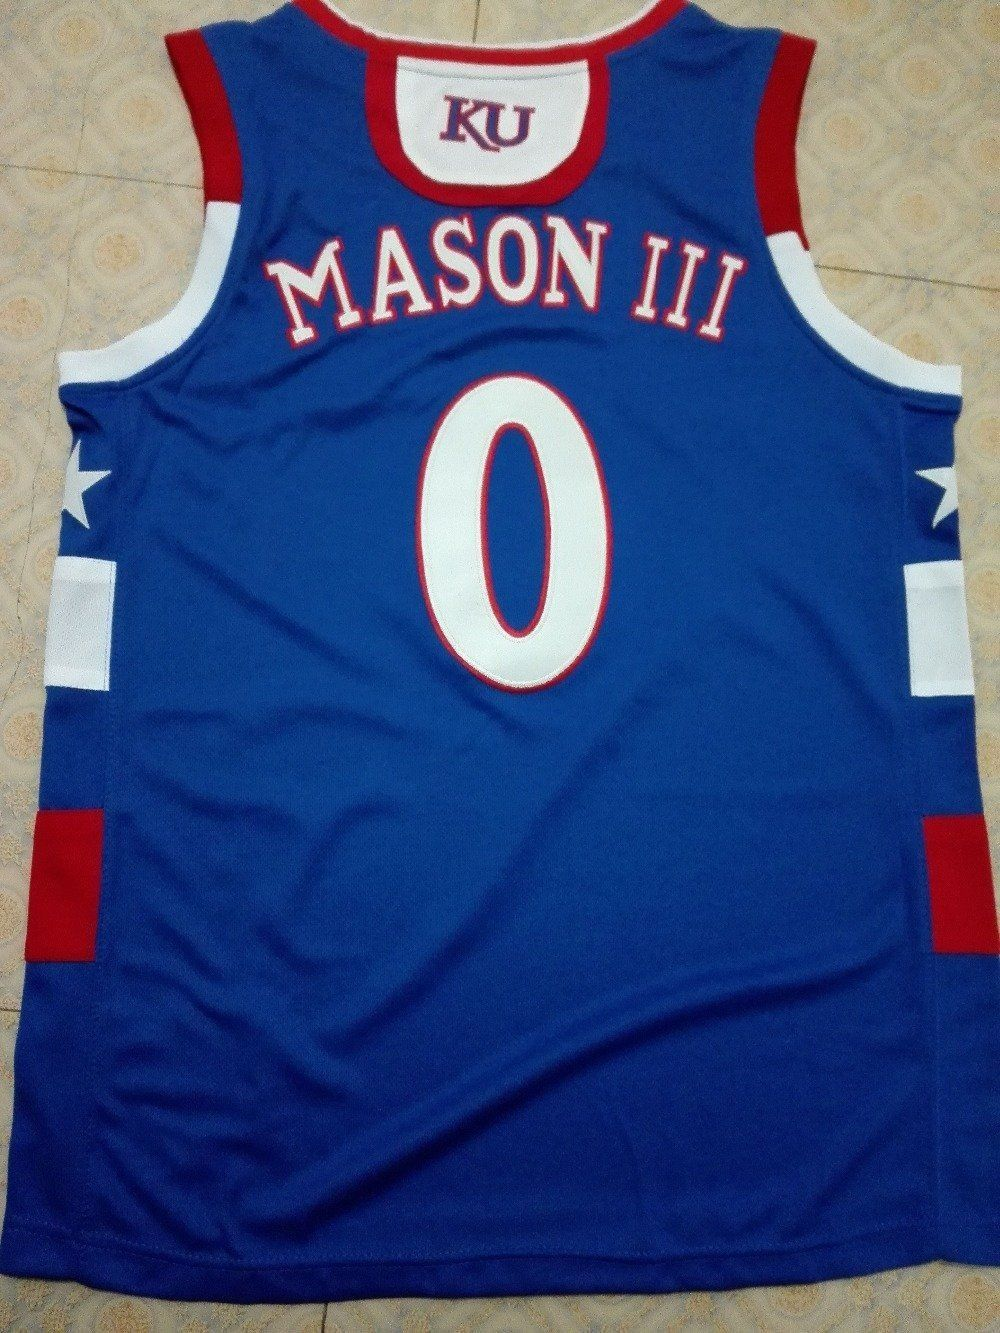 new arrival bc91f 736de Pin by Elizabeth Dibben on KU | Basketball jersey, Kansas ...